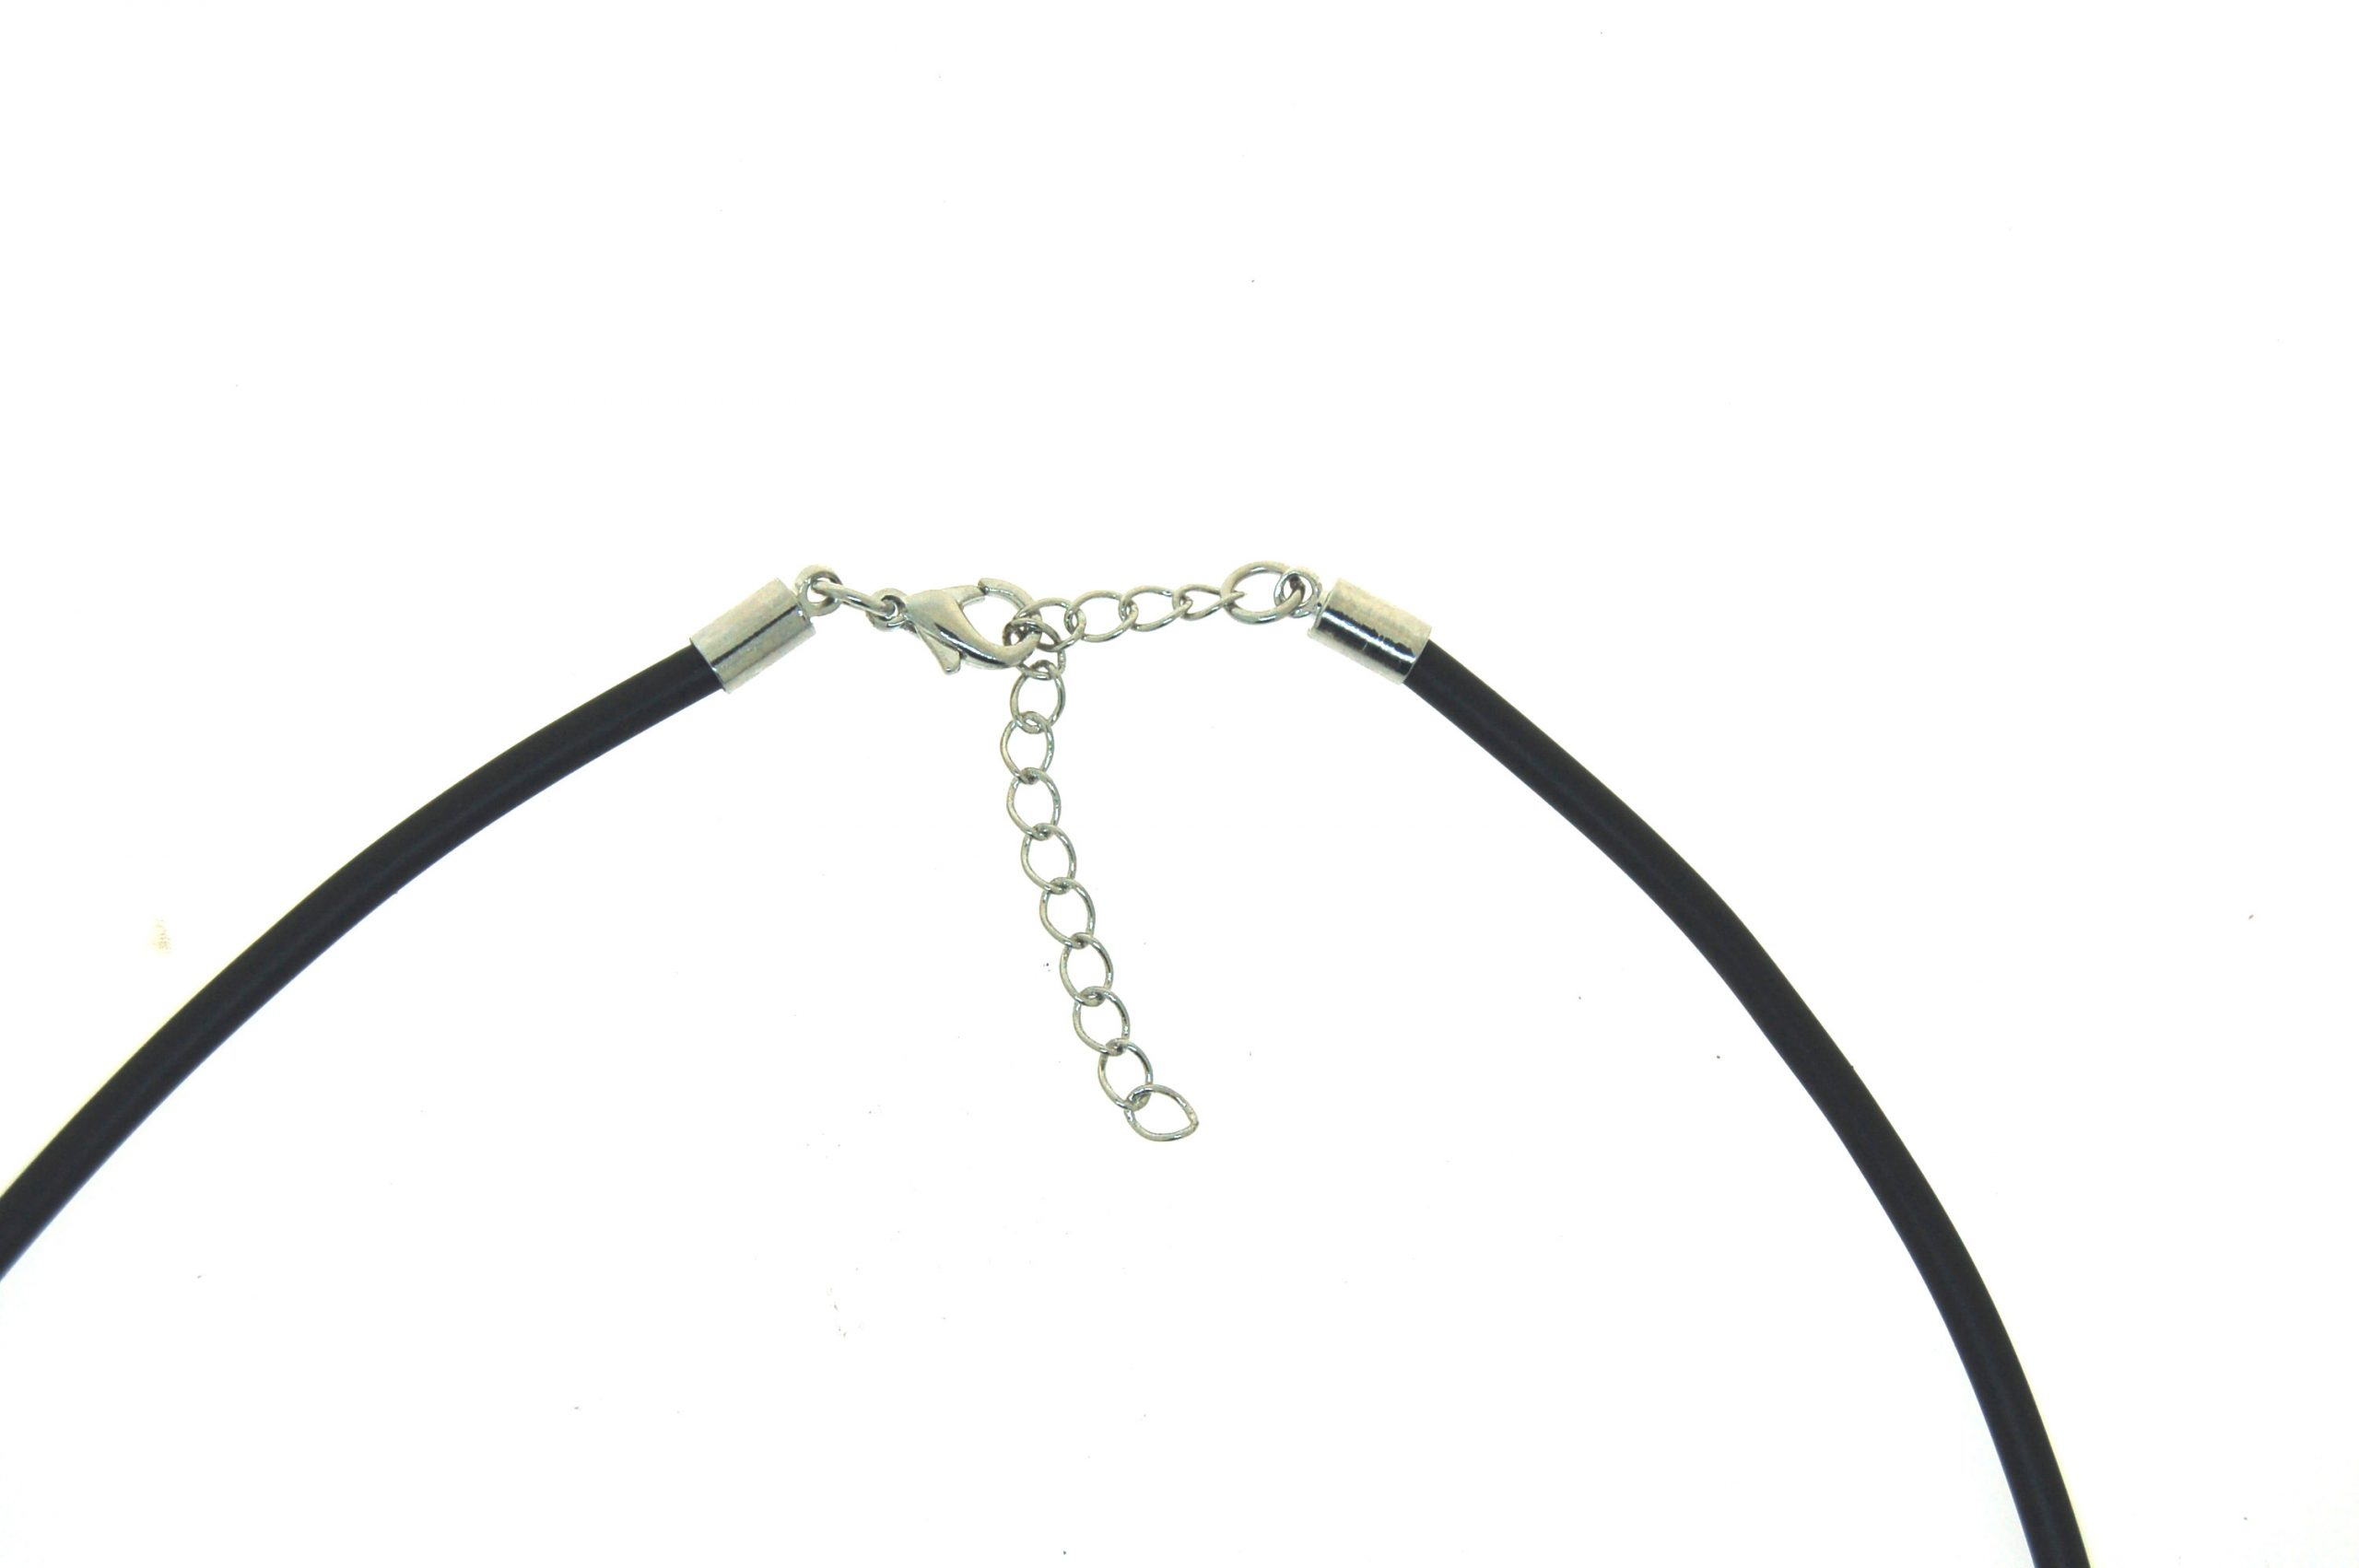 Neoprene Choker 3.0mm with Silver Plate Parrot Clasp